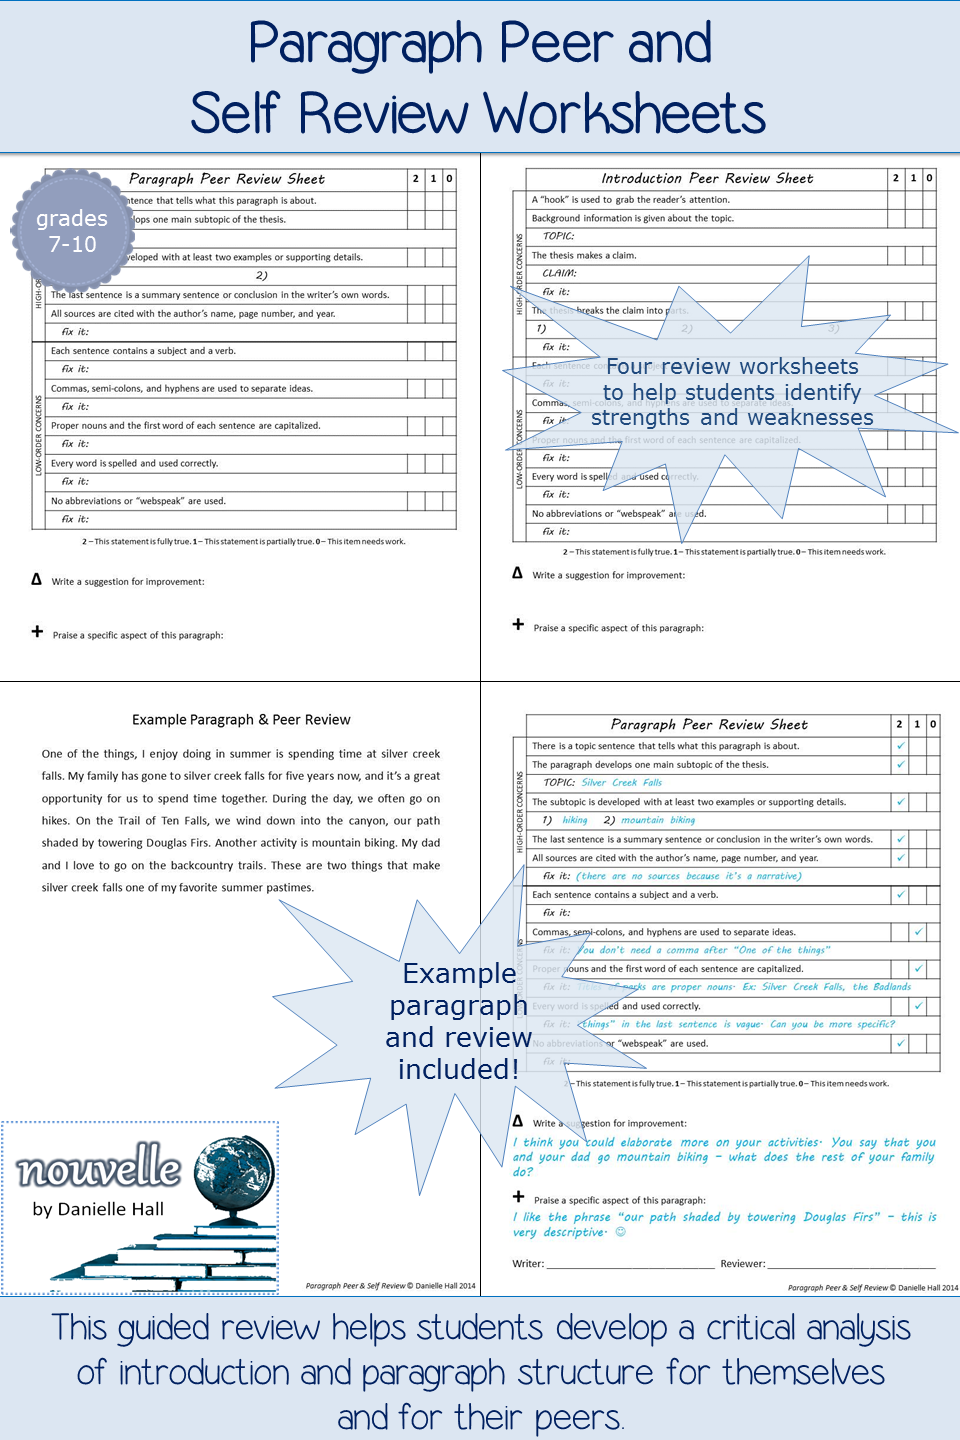 Paragraph peer and self review worksheets sample review included these worksheets help students review introductions and body paragraphs step by step this ibookread PDF